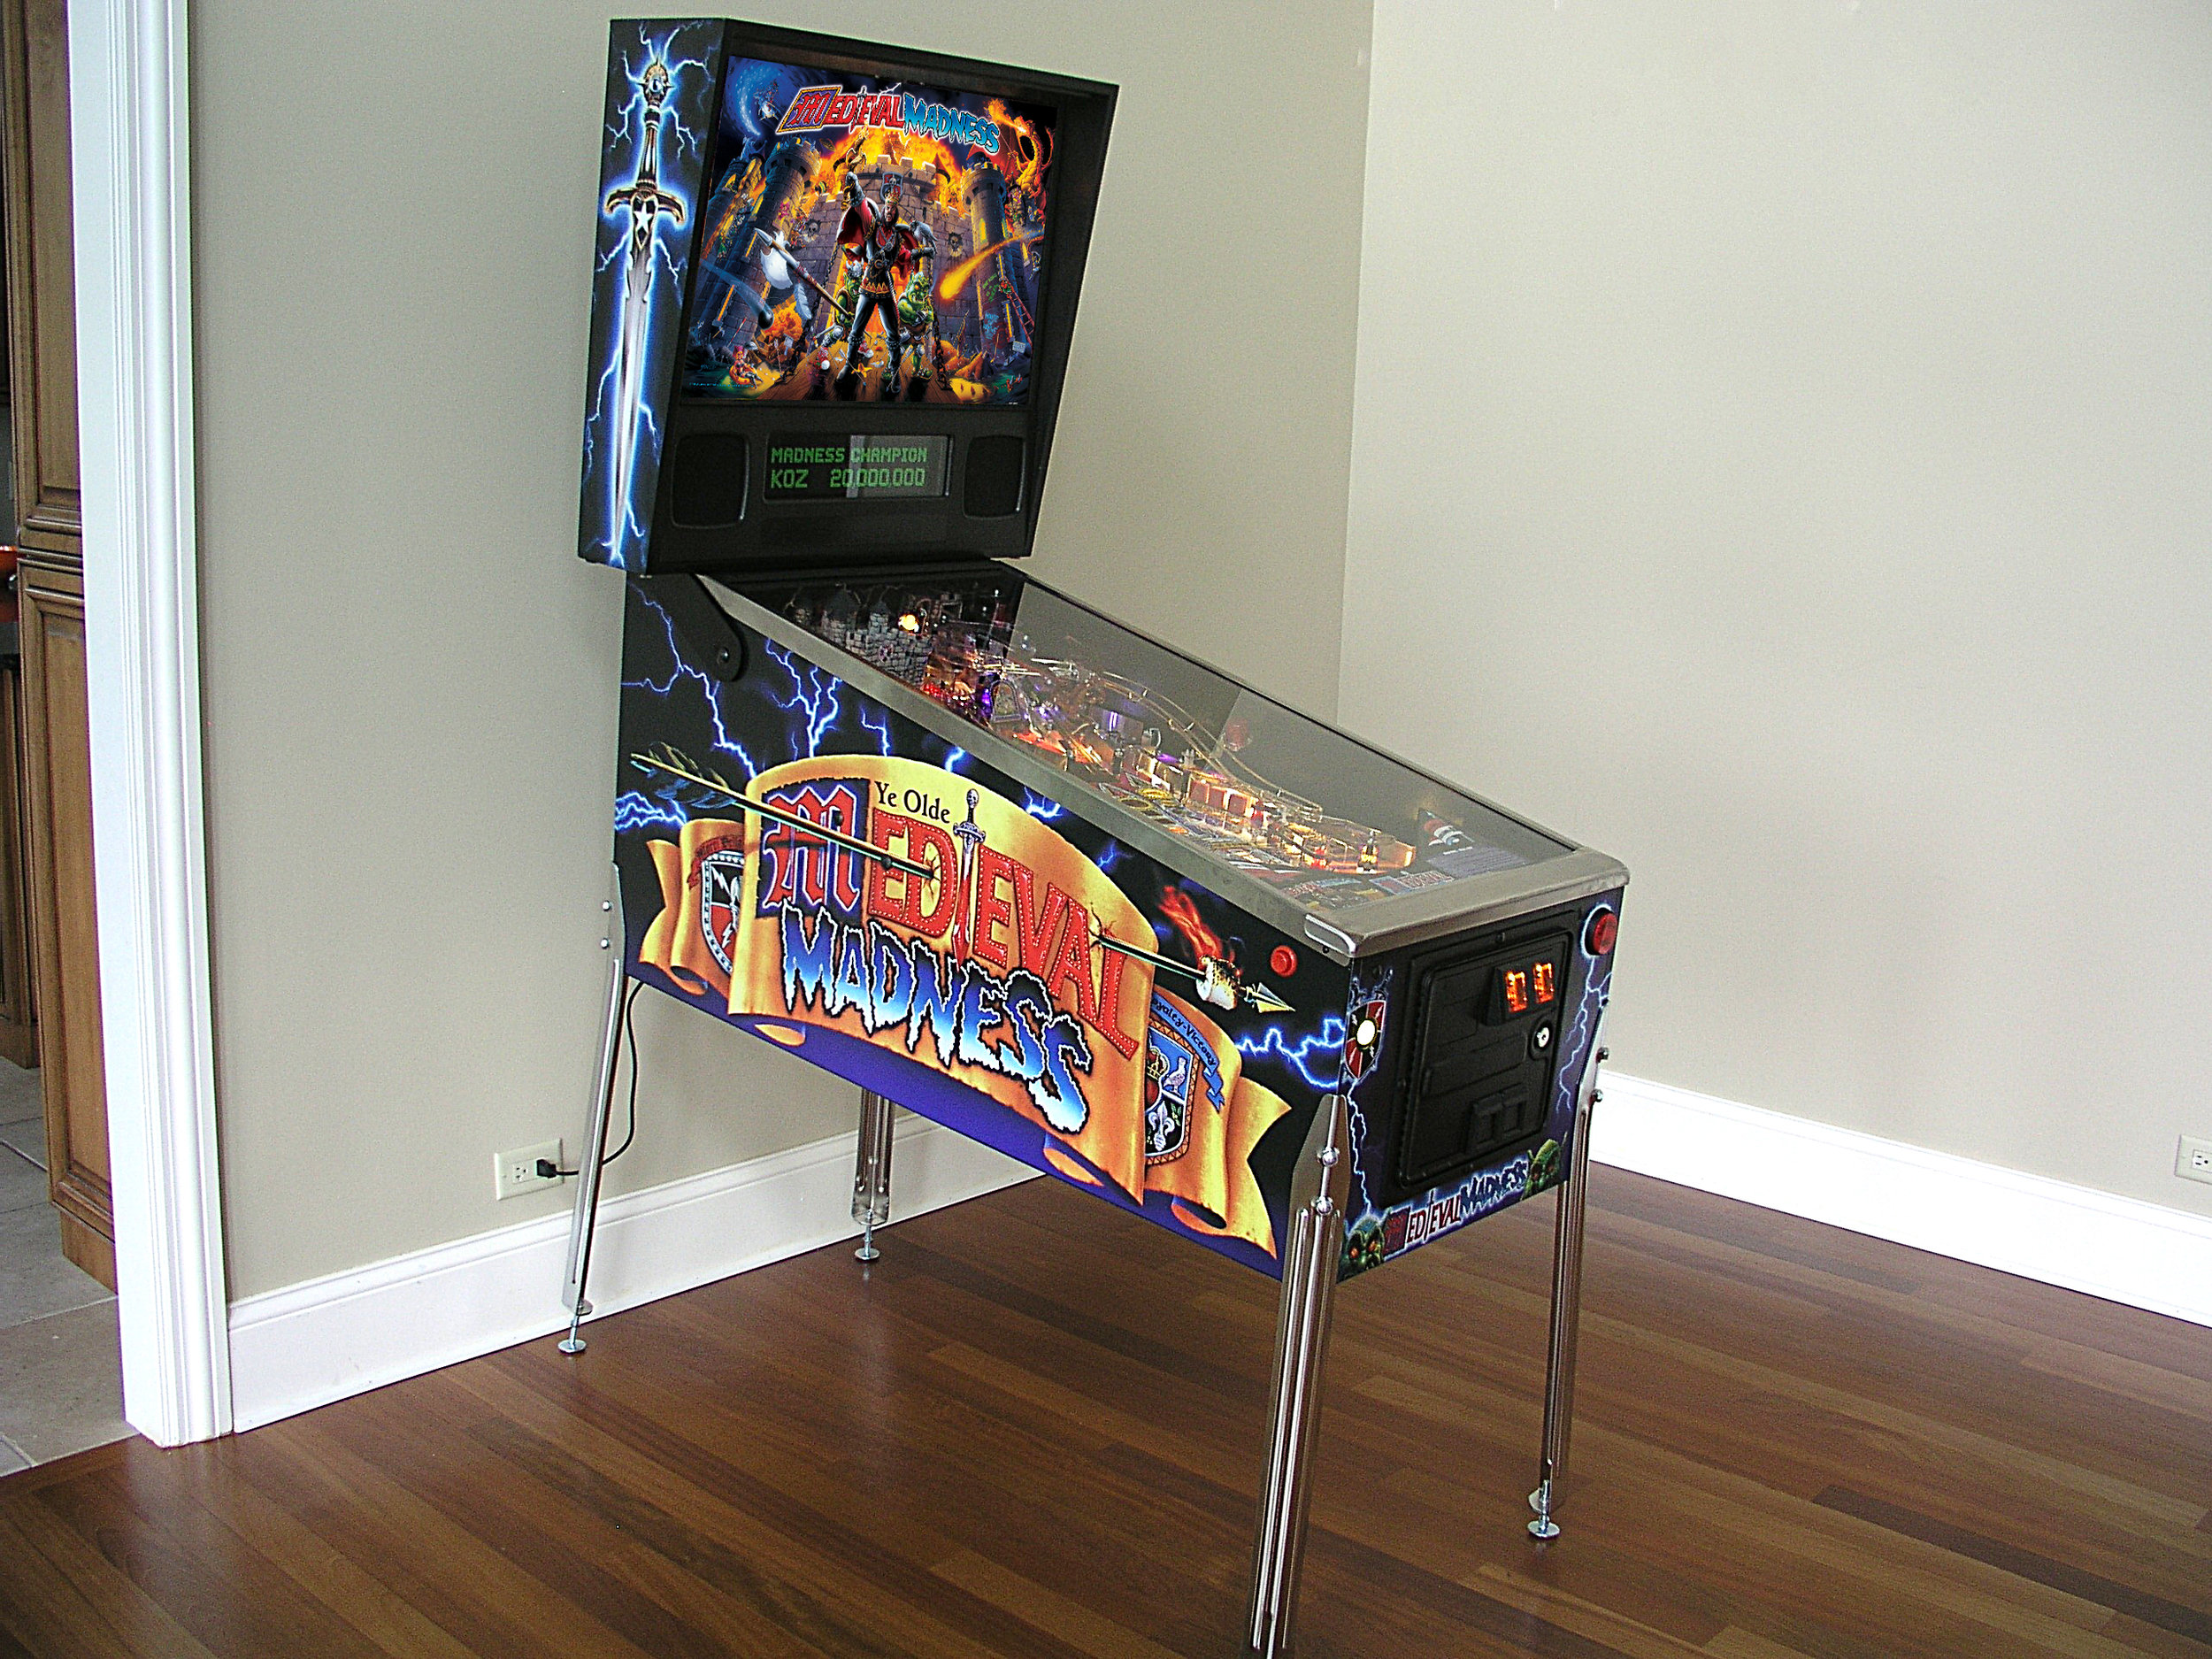 2016 Medieval Madness For Sale — Arcades At Home - Chicago